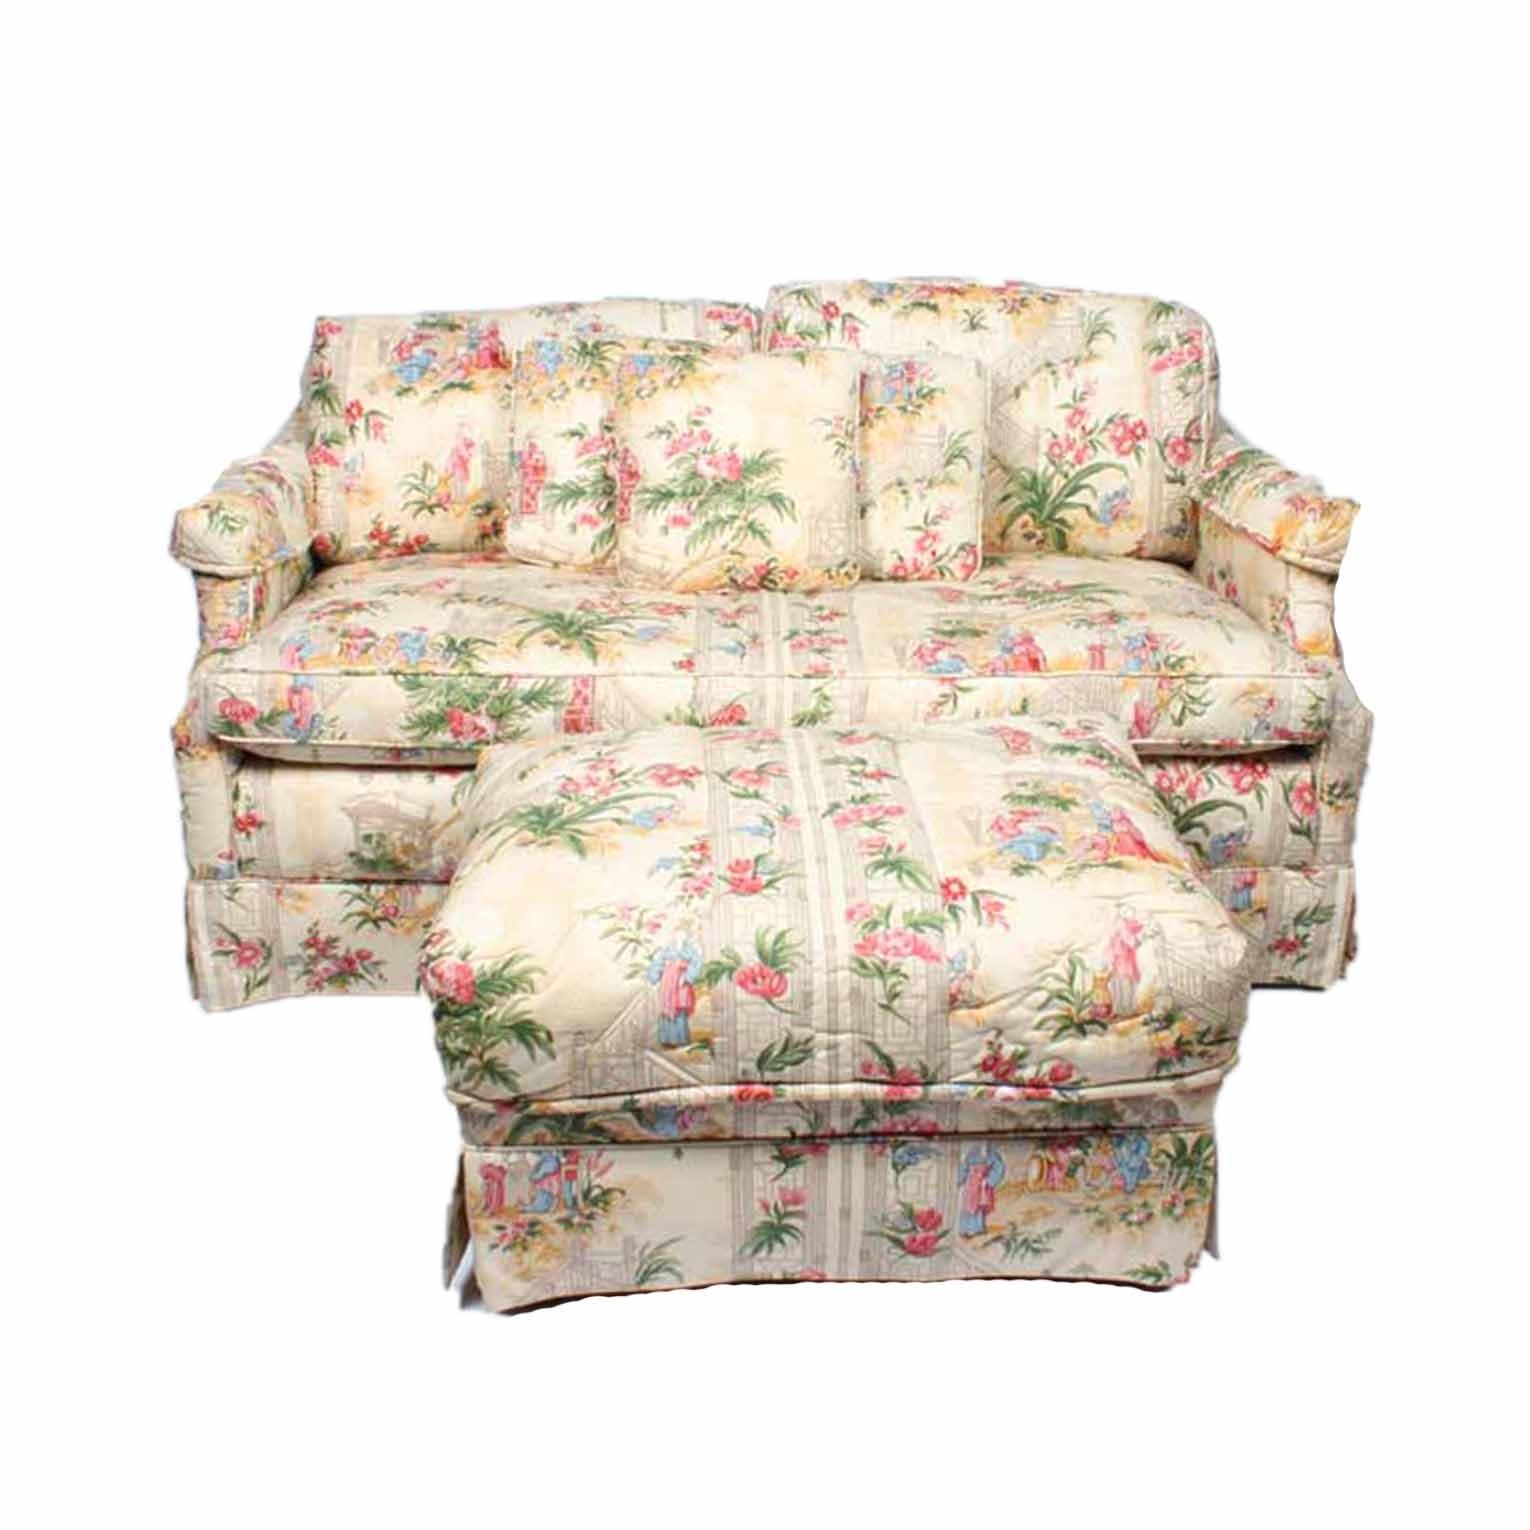 Floral Print Loveseat And Ottoman ...